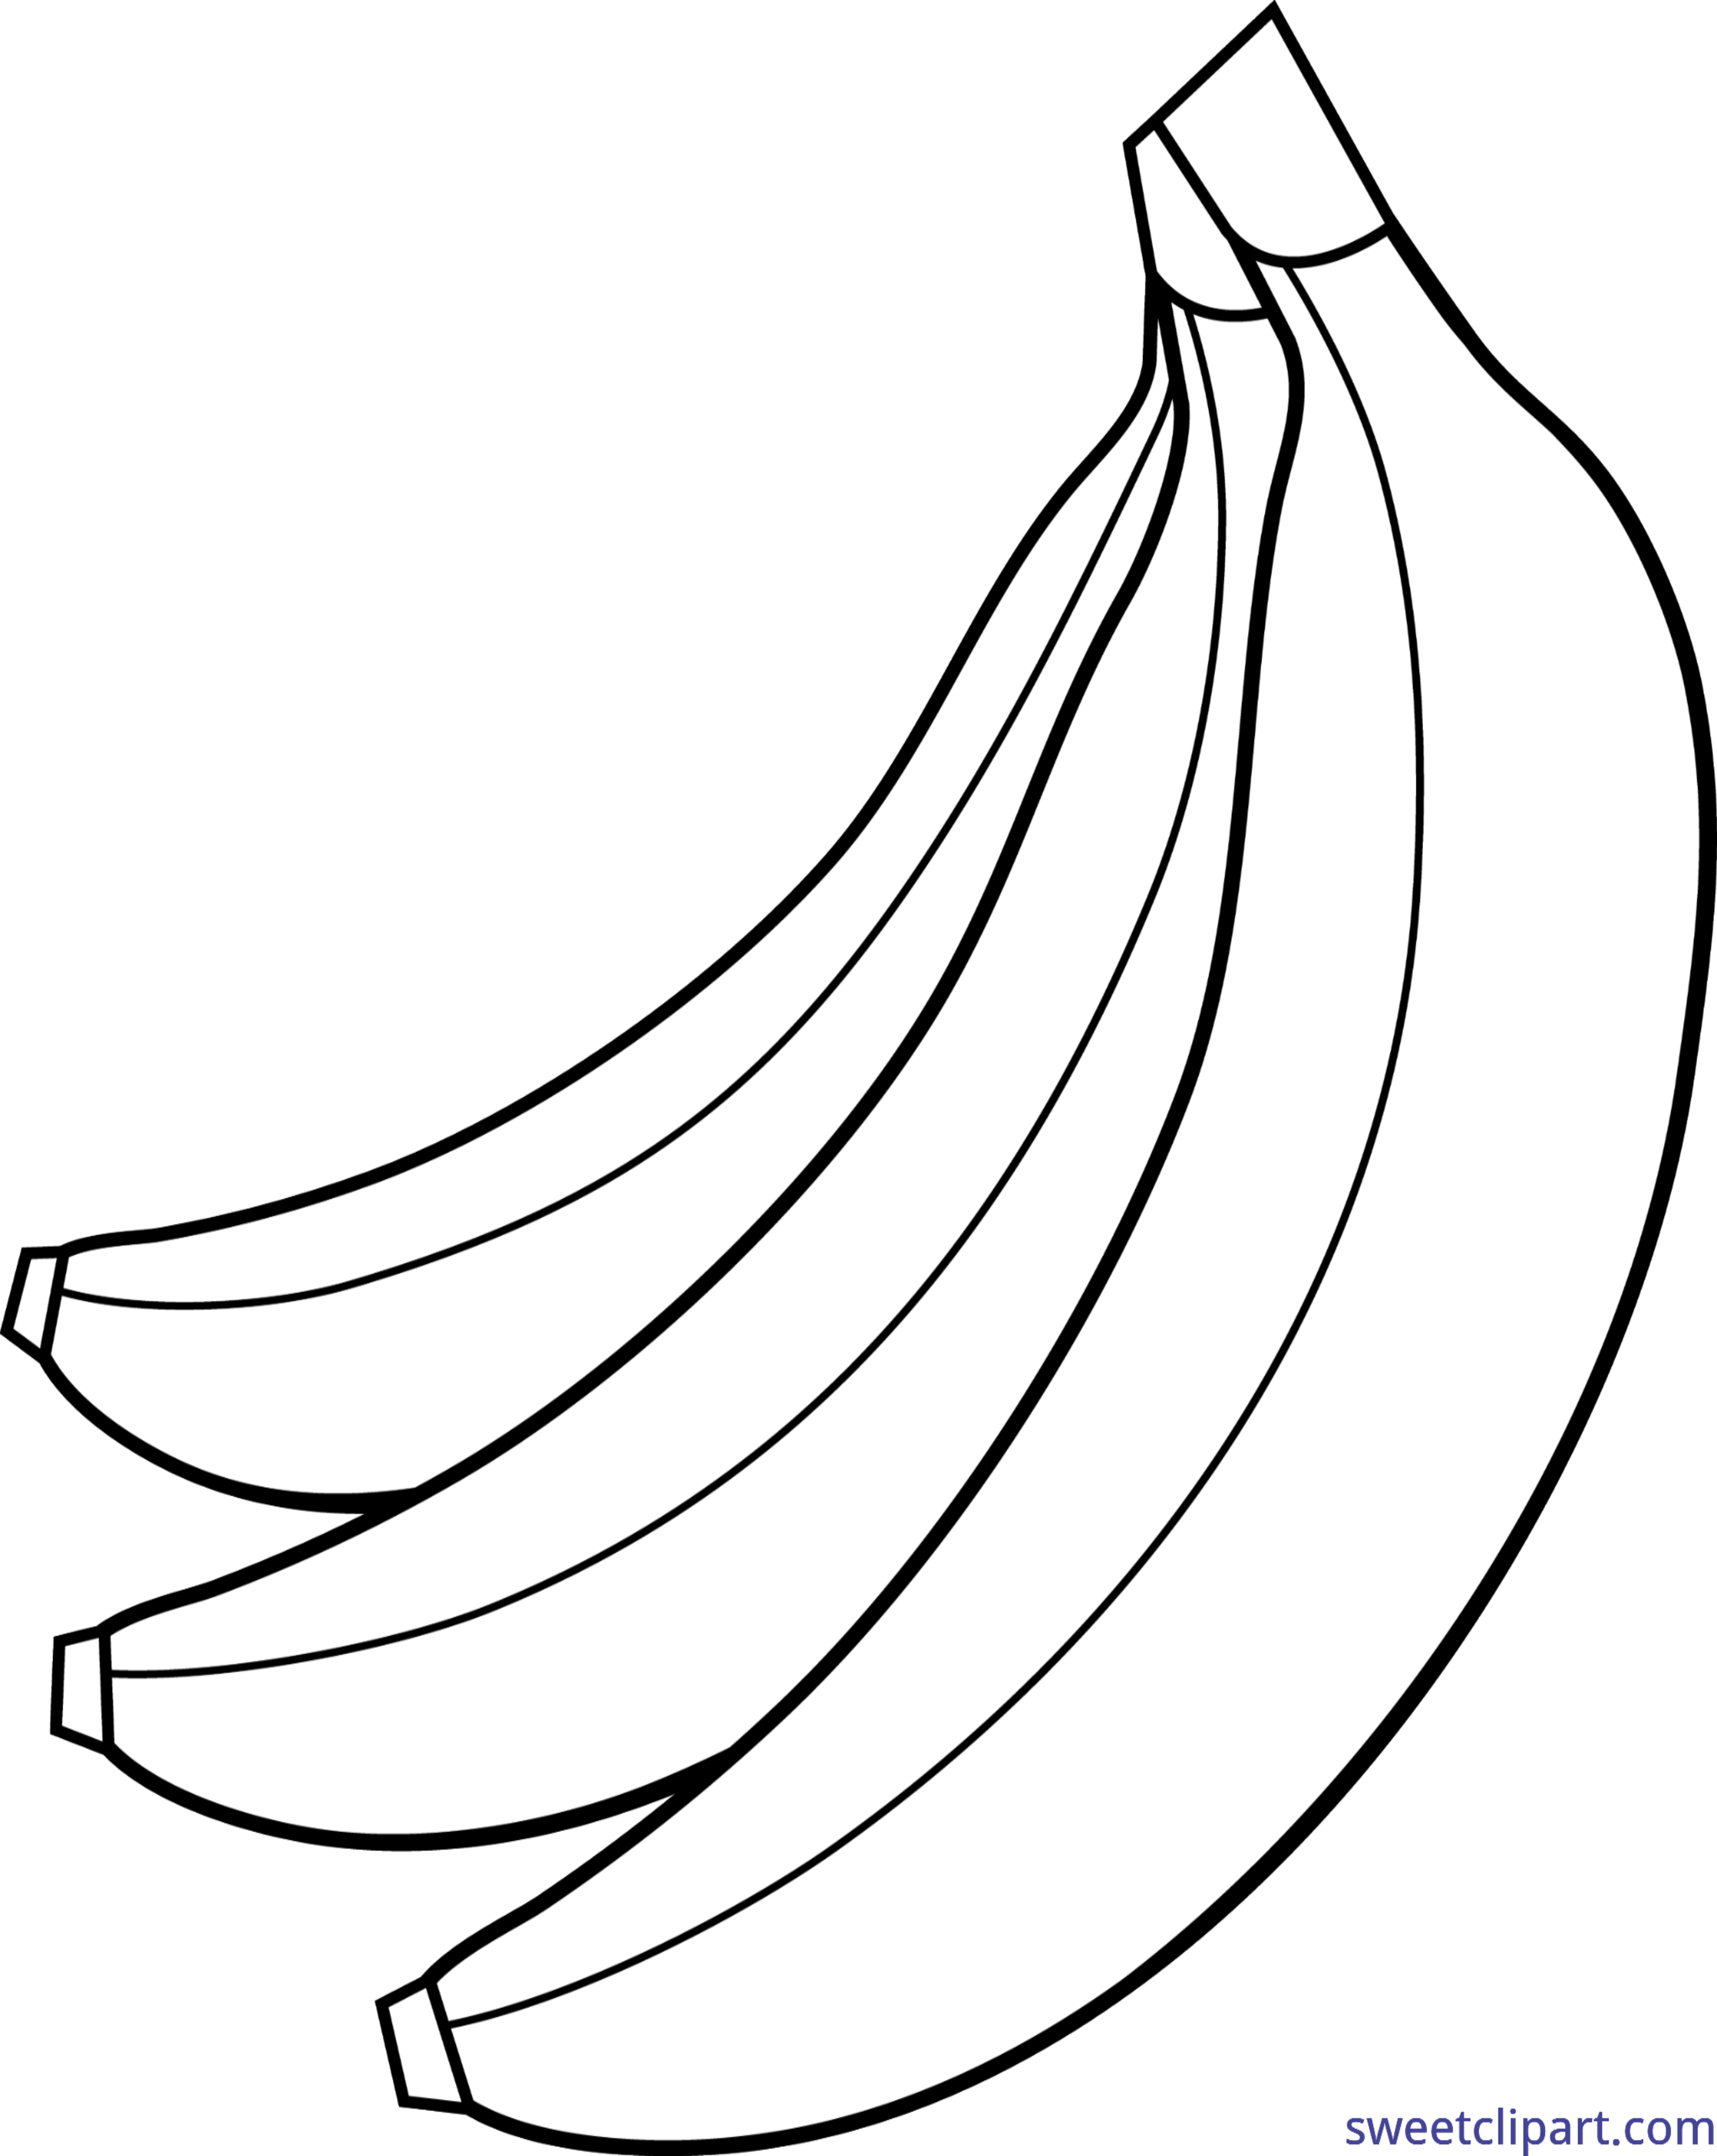 bananas bunch lineart clip art sweet clip art cute free clipart for 16 year old girl cute free clipart sharks